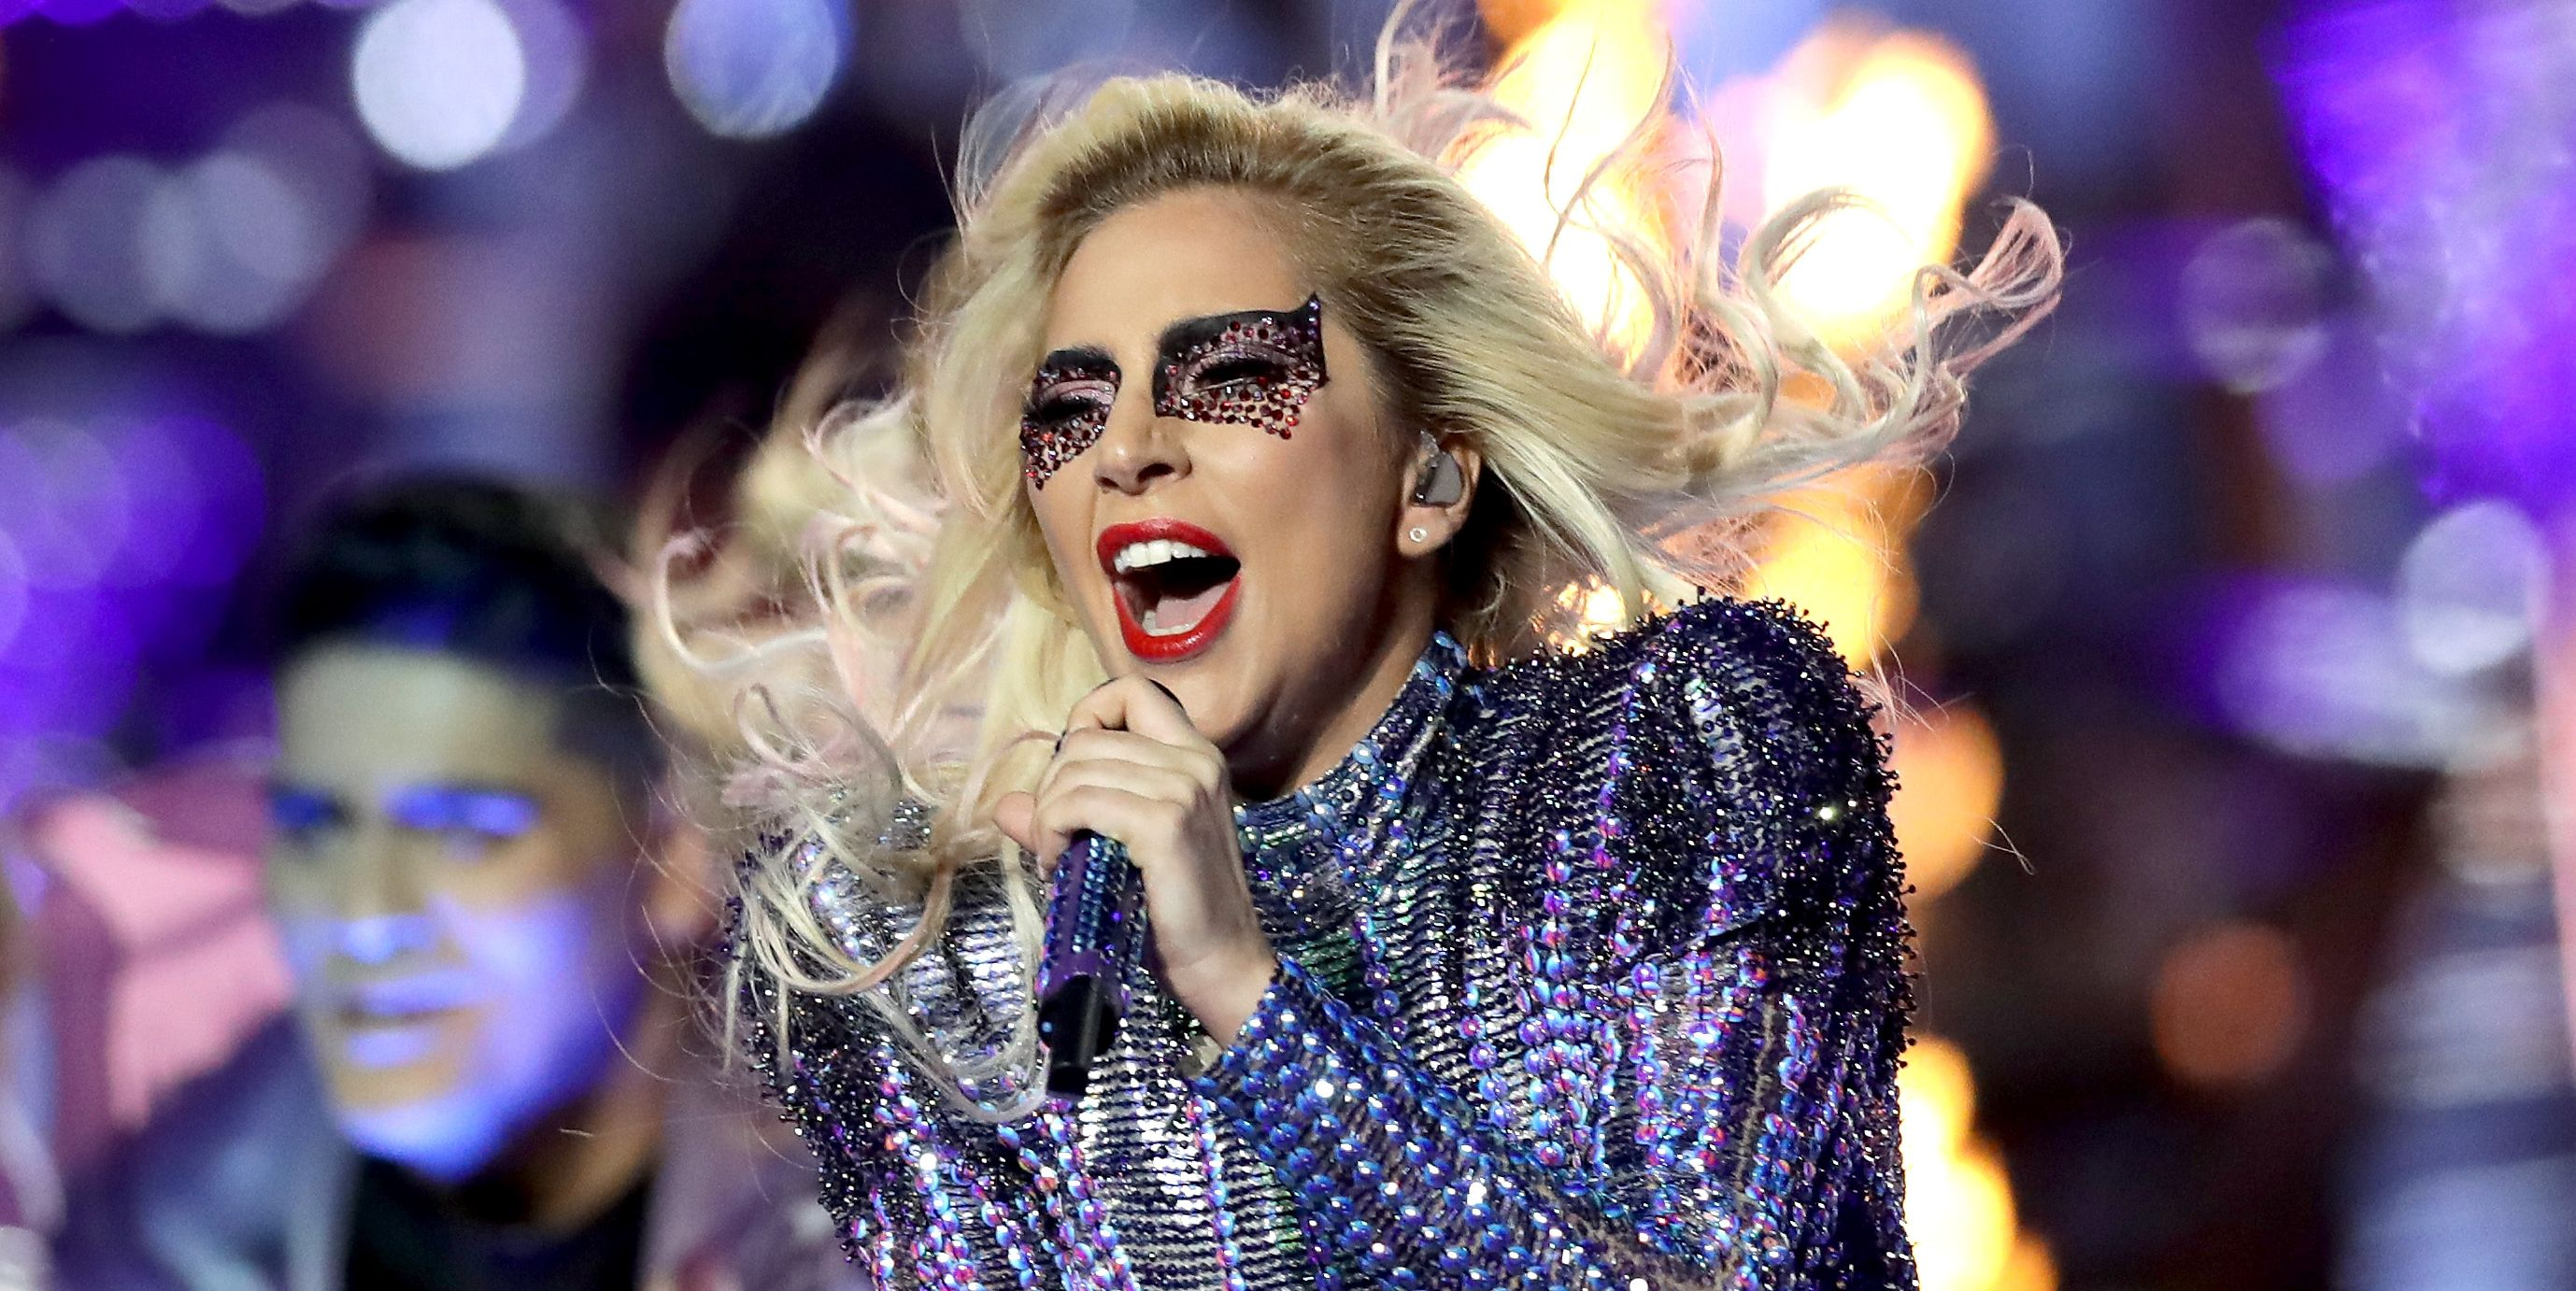 Lady Gaga's Isolated Vocals from the Super Bowl Are Proof She's a Living Legend